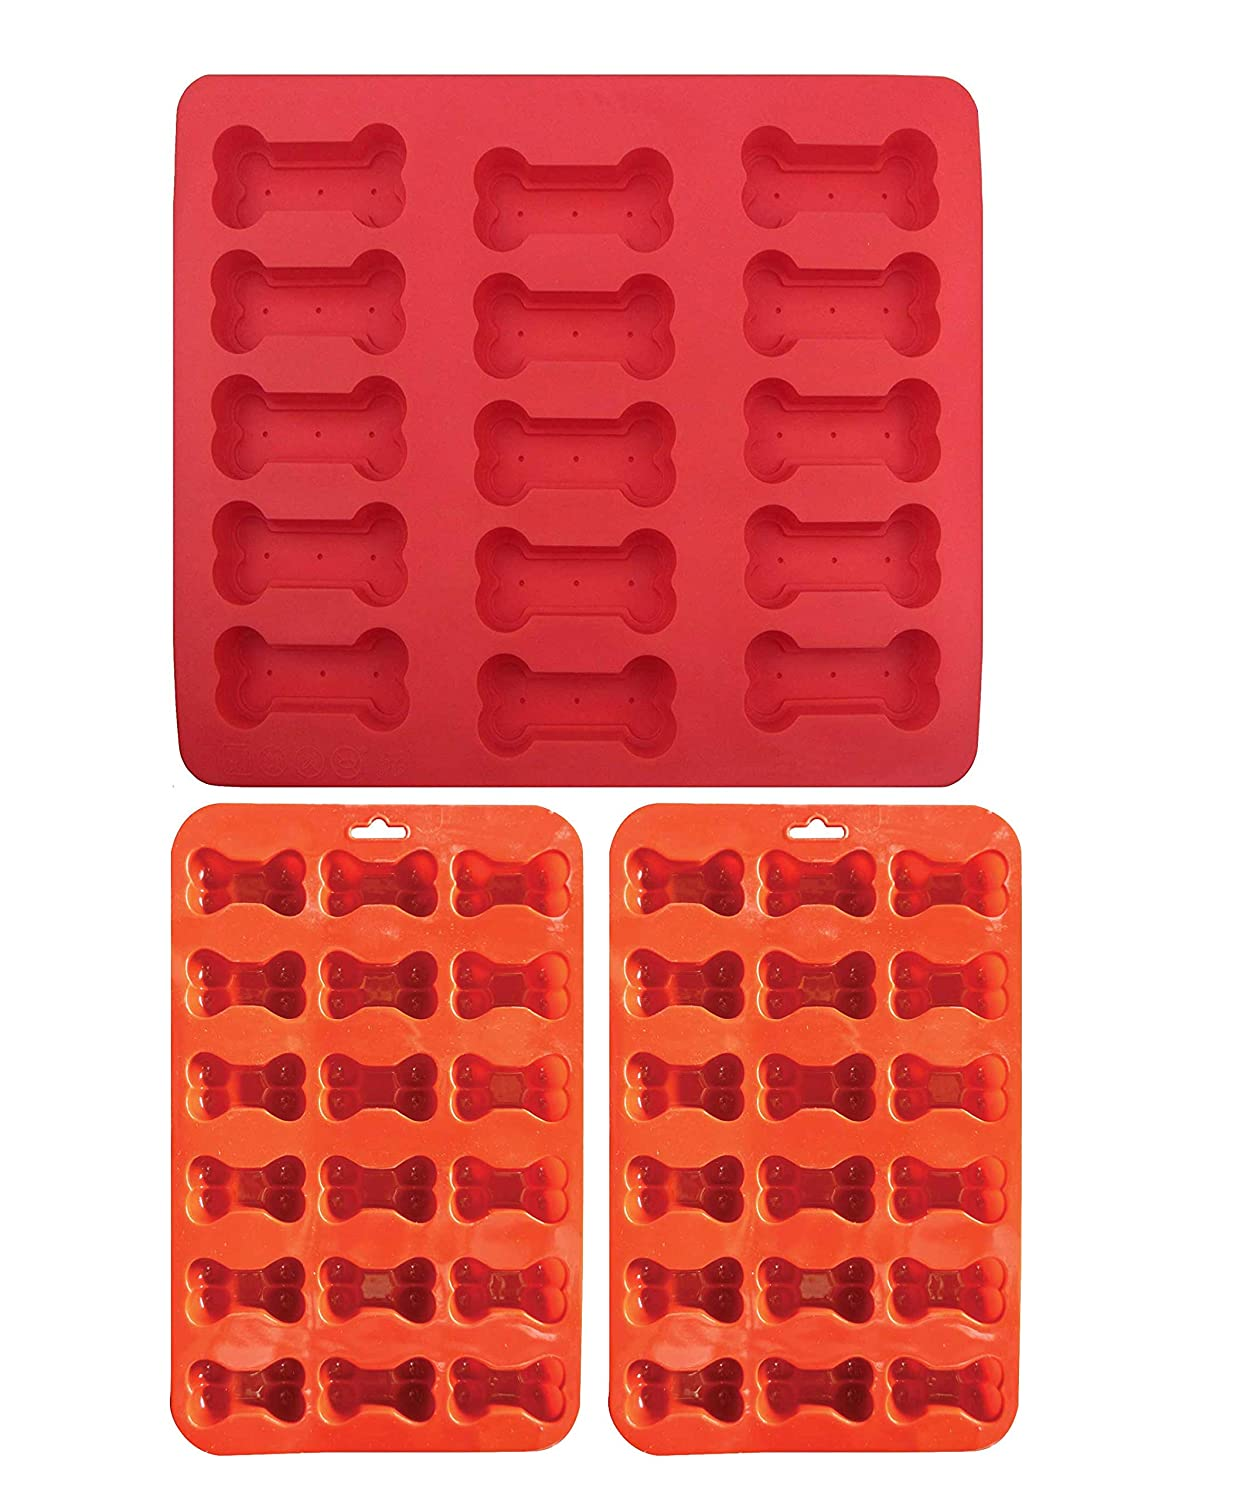 3 Pack Combo Silicone Molds Trays with 2 X Mini Bone molds and 1 X Large Bone Shape mold, Homemade Dog Treats, Baking Chocolate Candy, Oven Microwave Freezer Safe